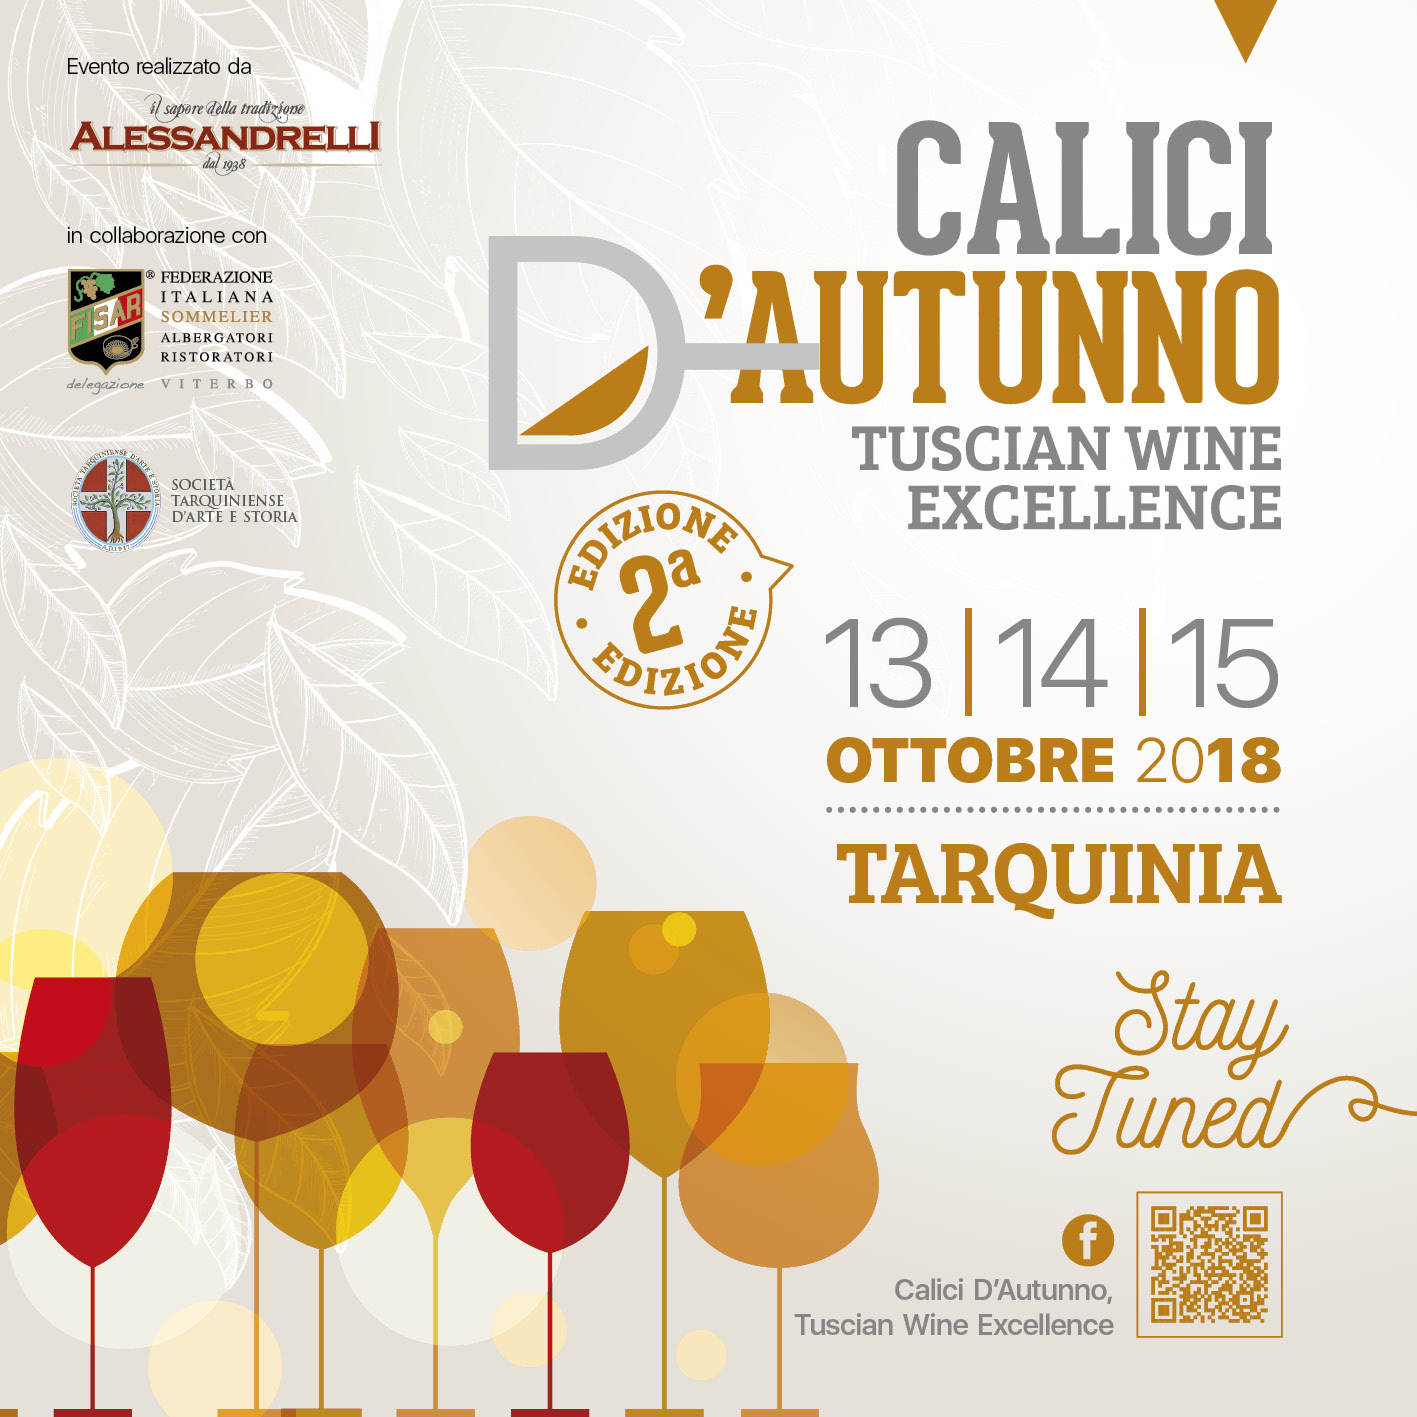 Calici D'Autunno, Tuscian Wine Excellence